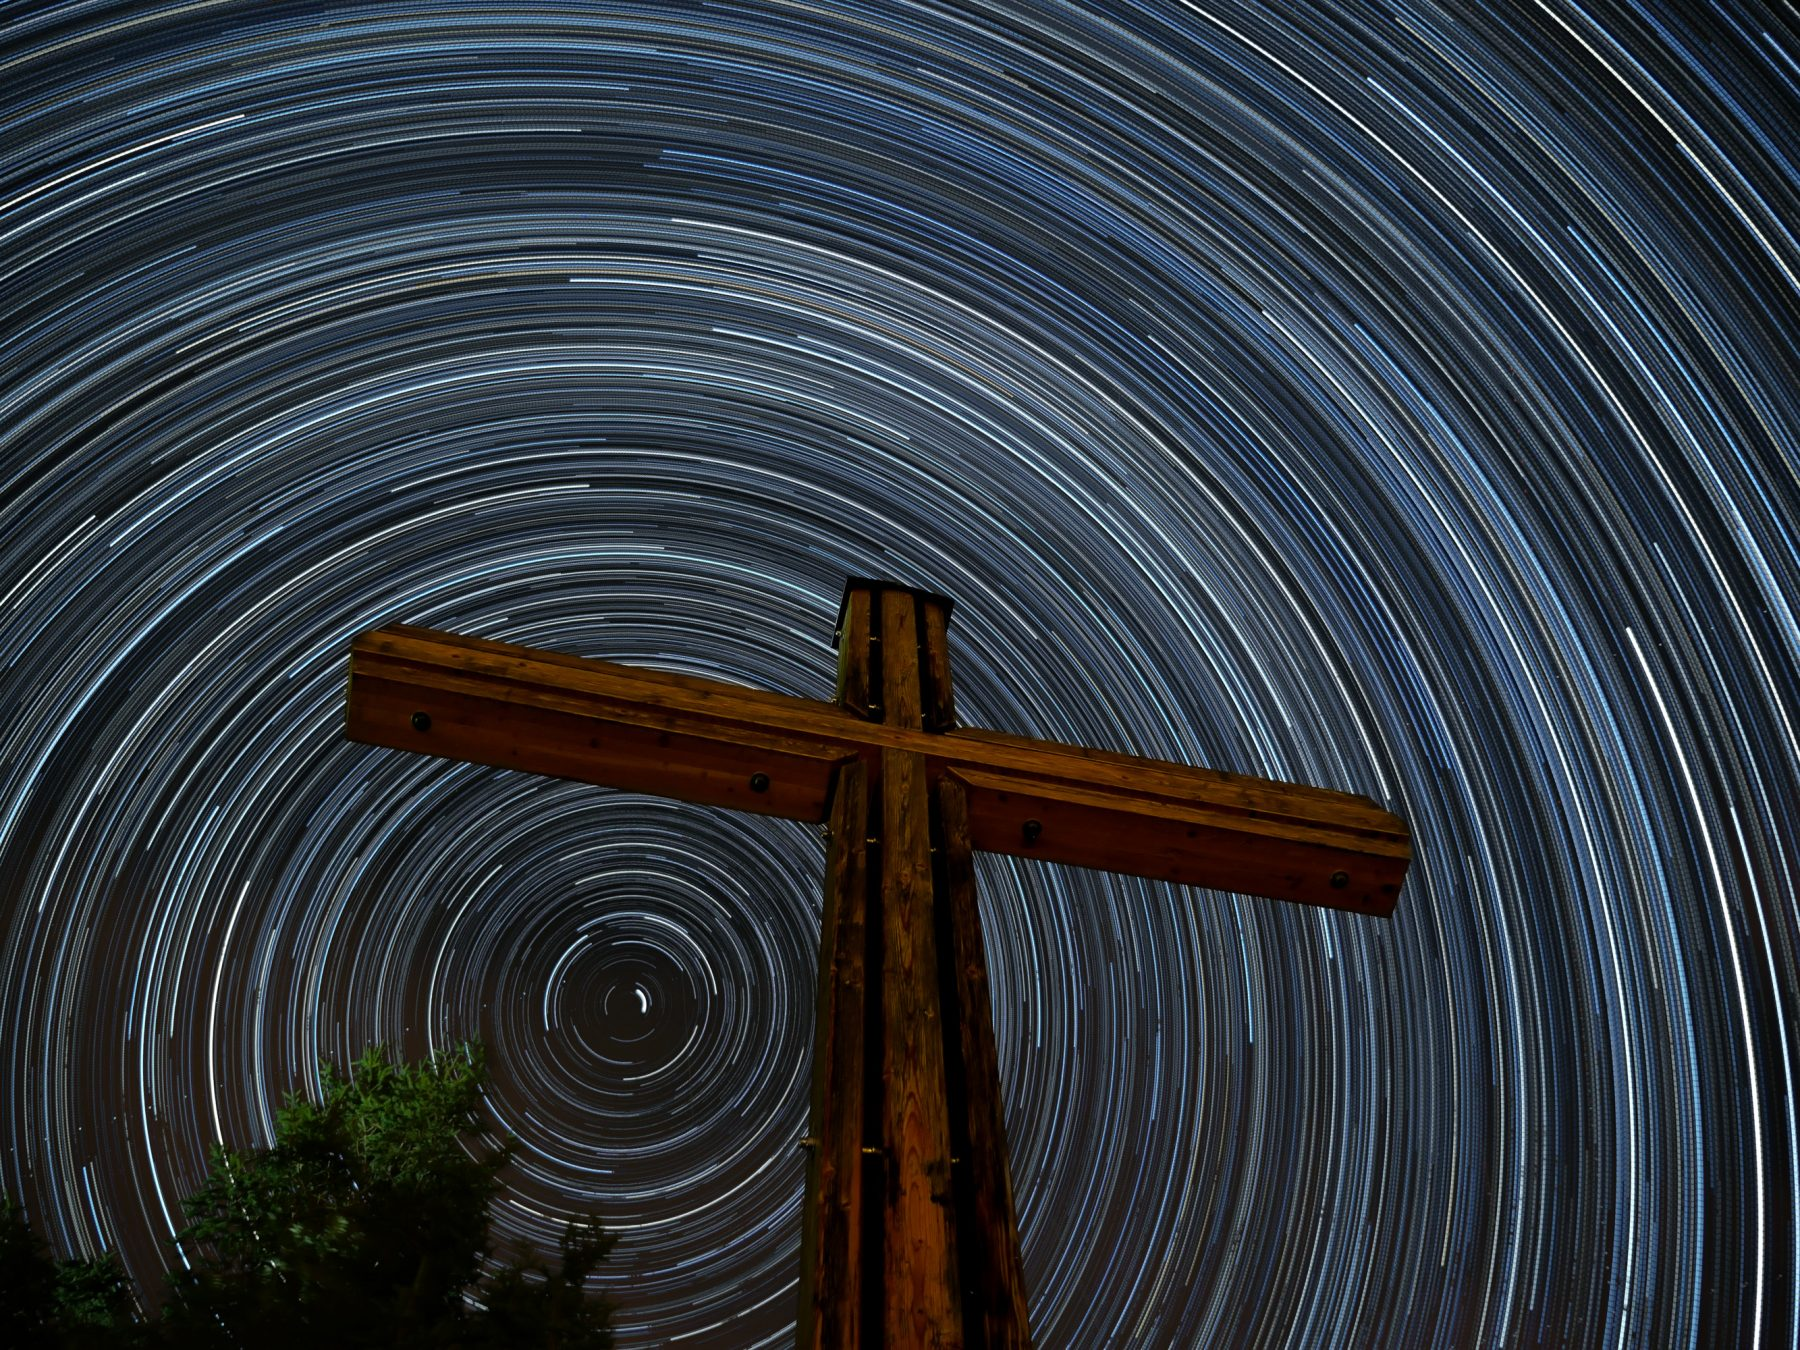 my first startrail-image from 2015